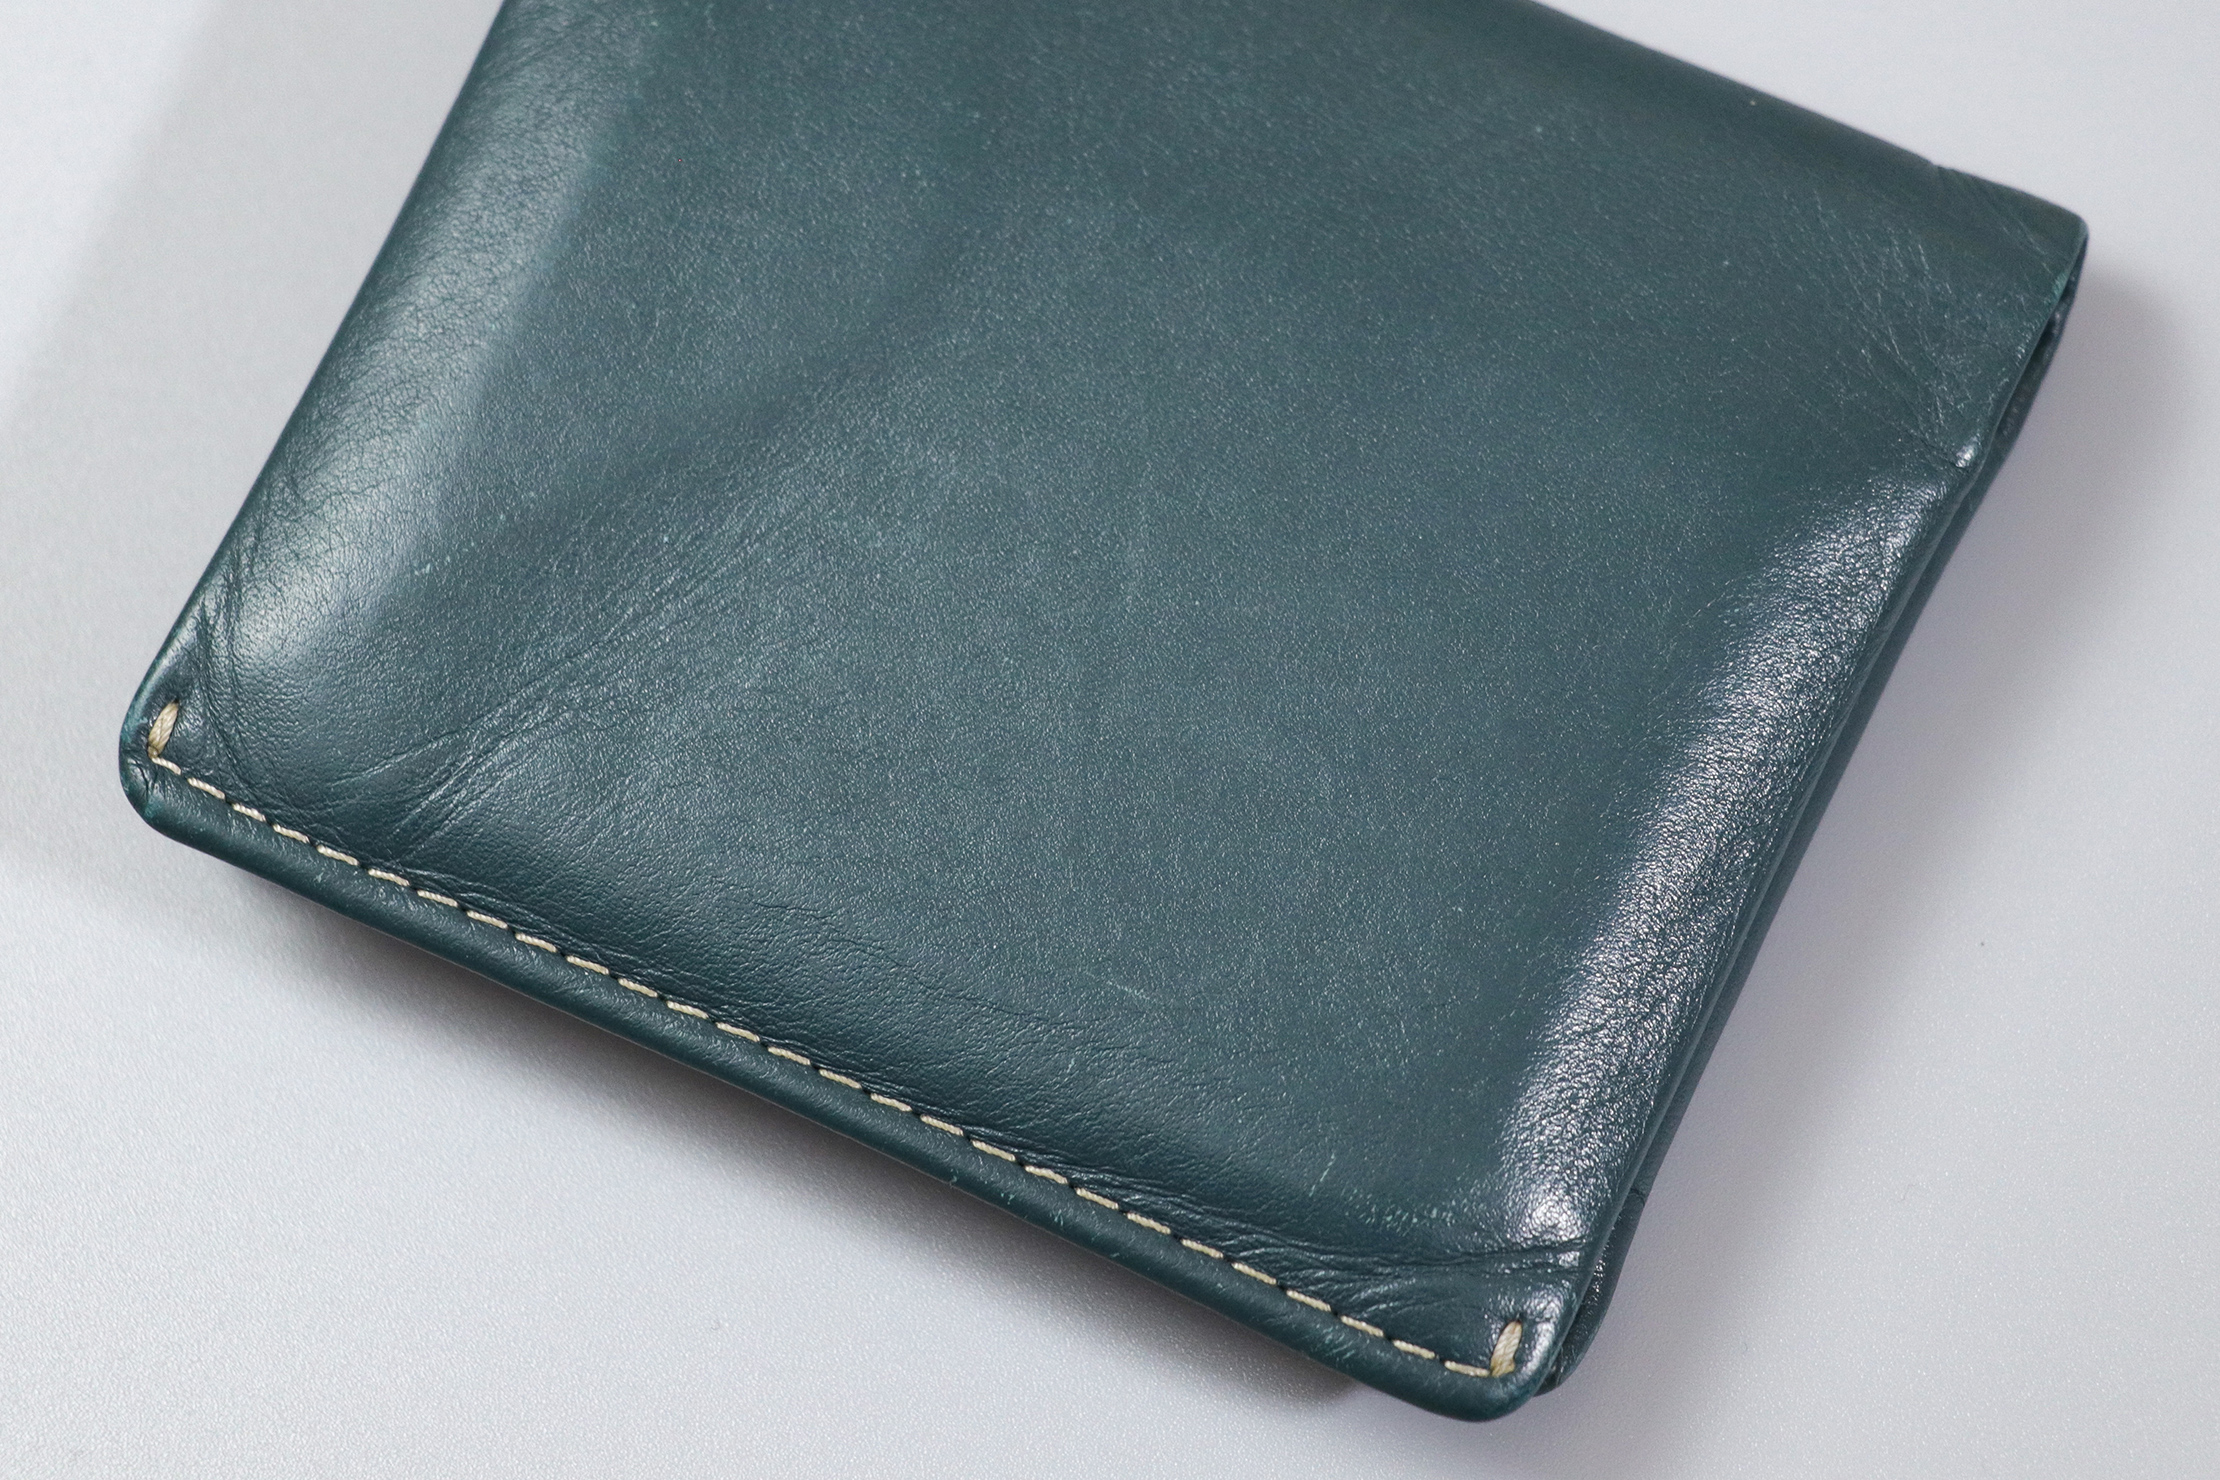 Bellroy Note Sleeve Leather Material